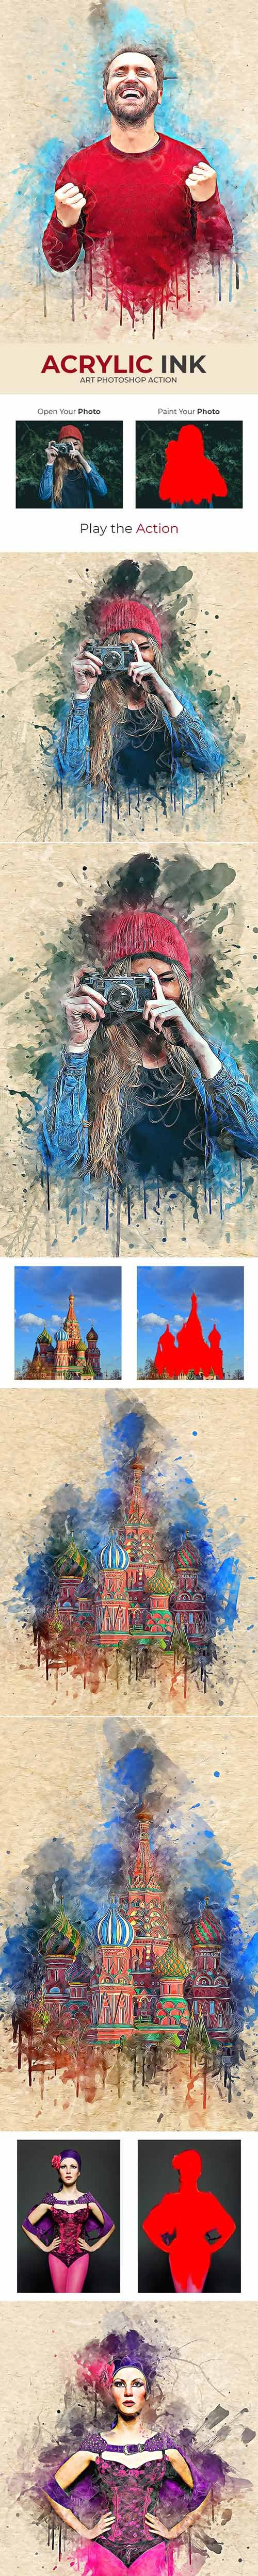 GraphicRiver - Acrylic Ink Art Photoshop Action 22336615